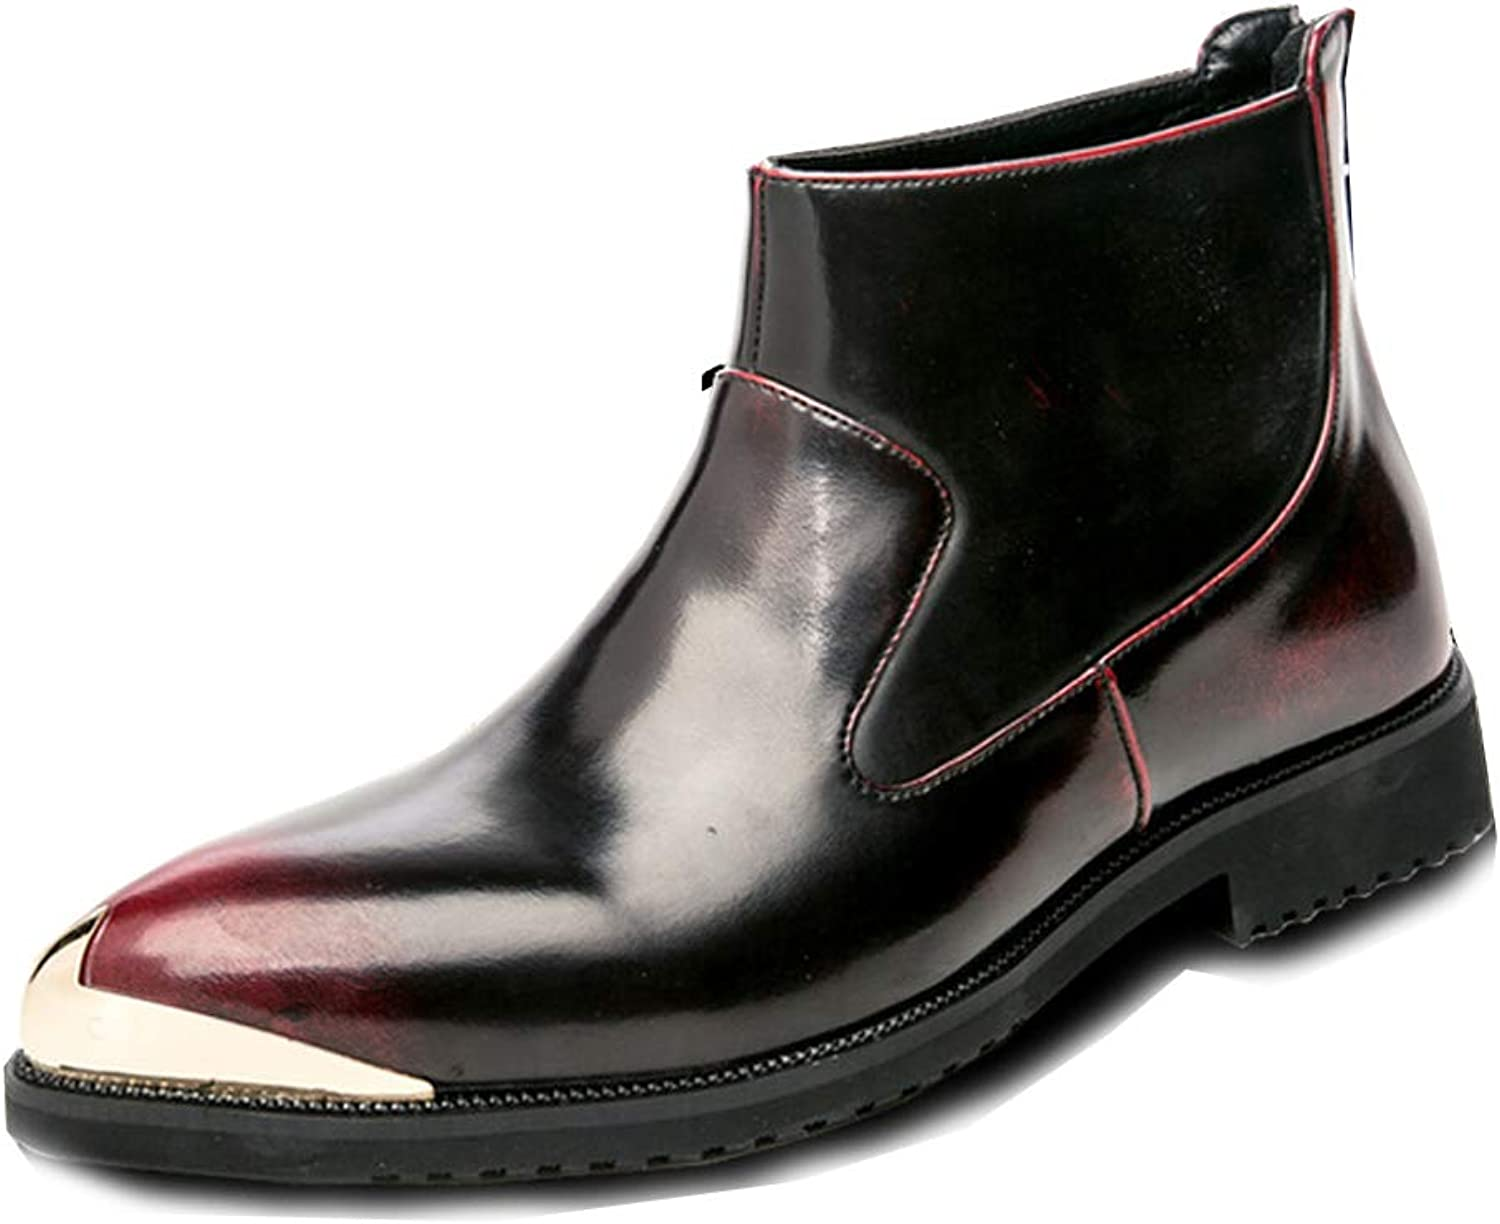 Men's Chelsea Boots Classic Martin Boots Business Casual Boots Ankle Boots Combat Boots Riding Boots